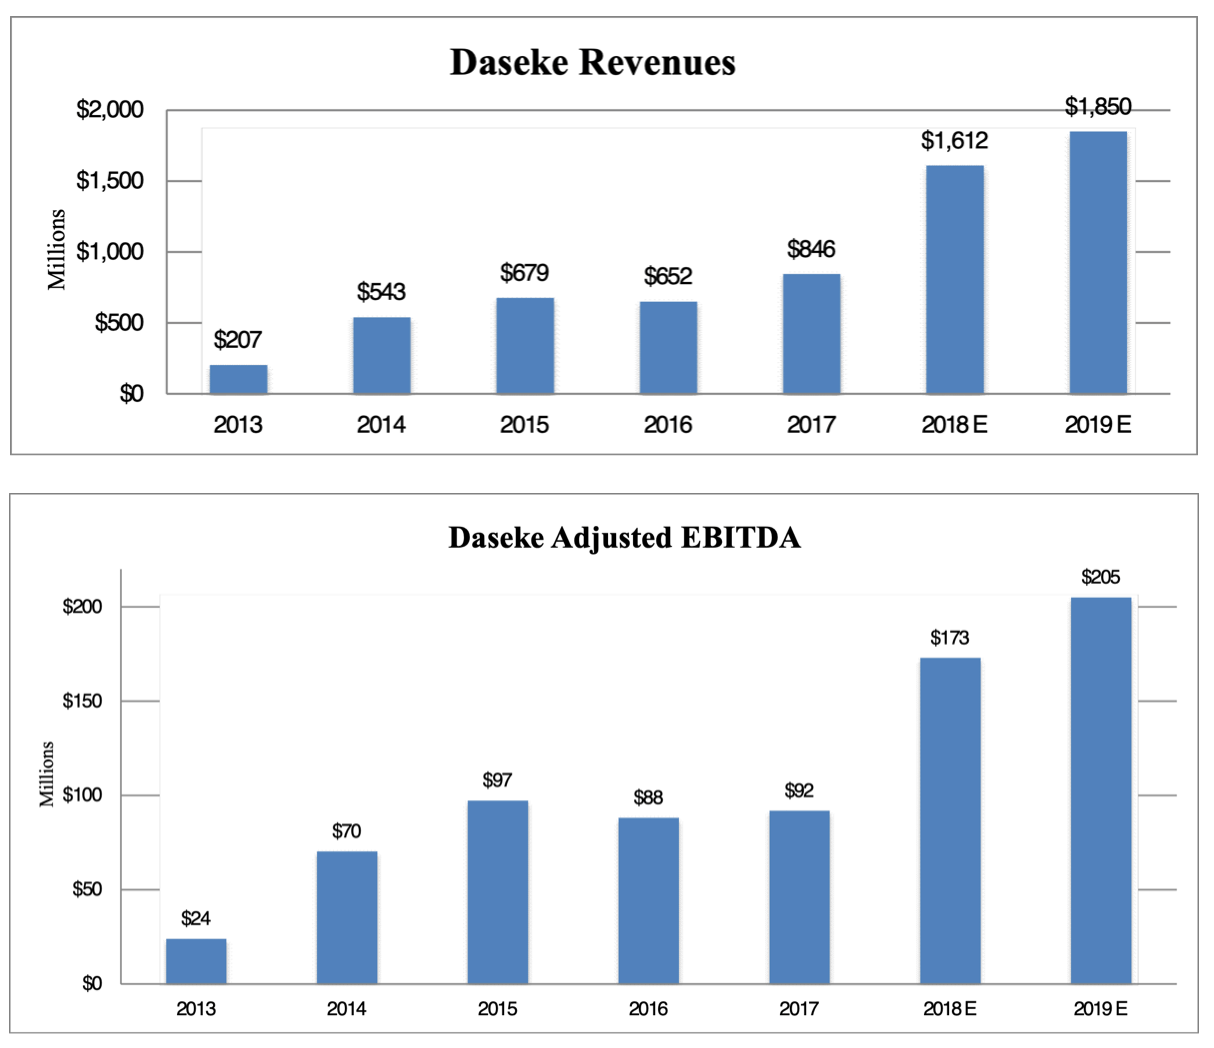 DSKE: Daseke pre-announces strong 4Q; Revenues and Adj. EBITDA above expectations